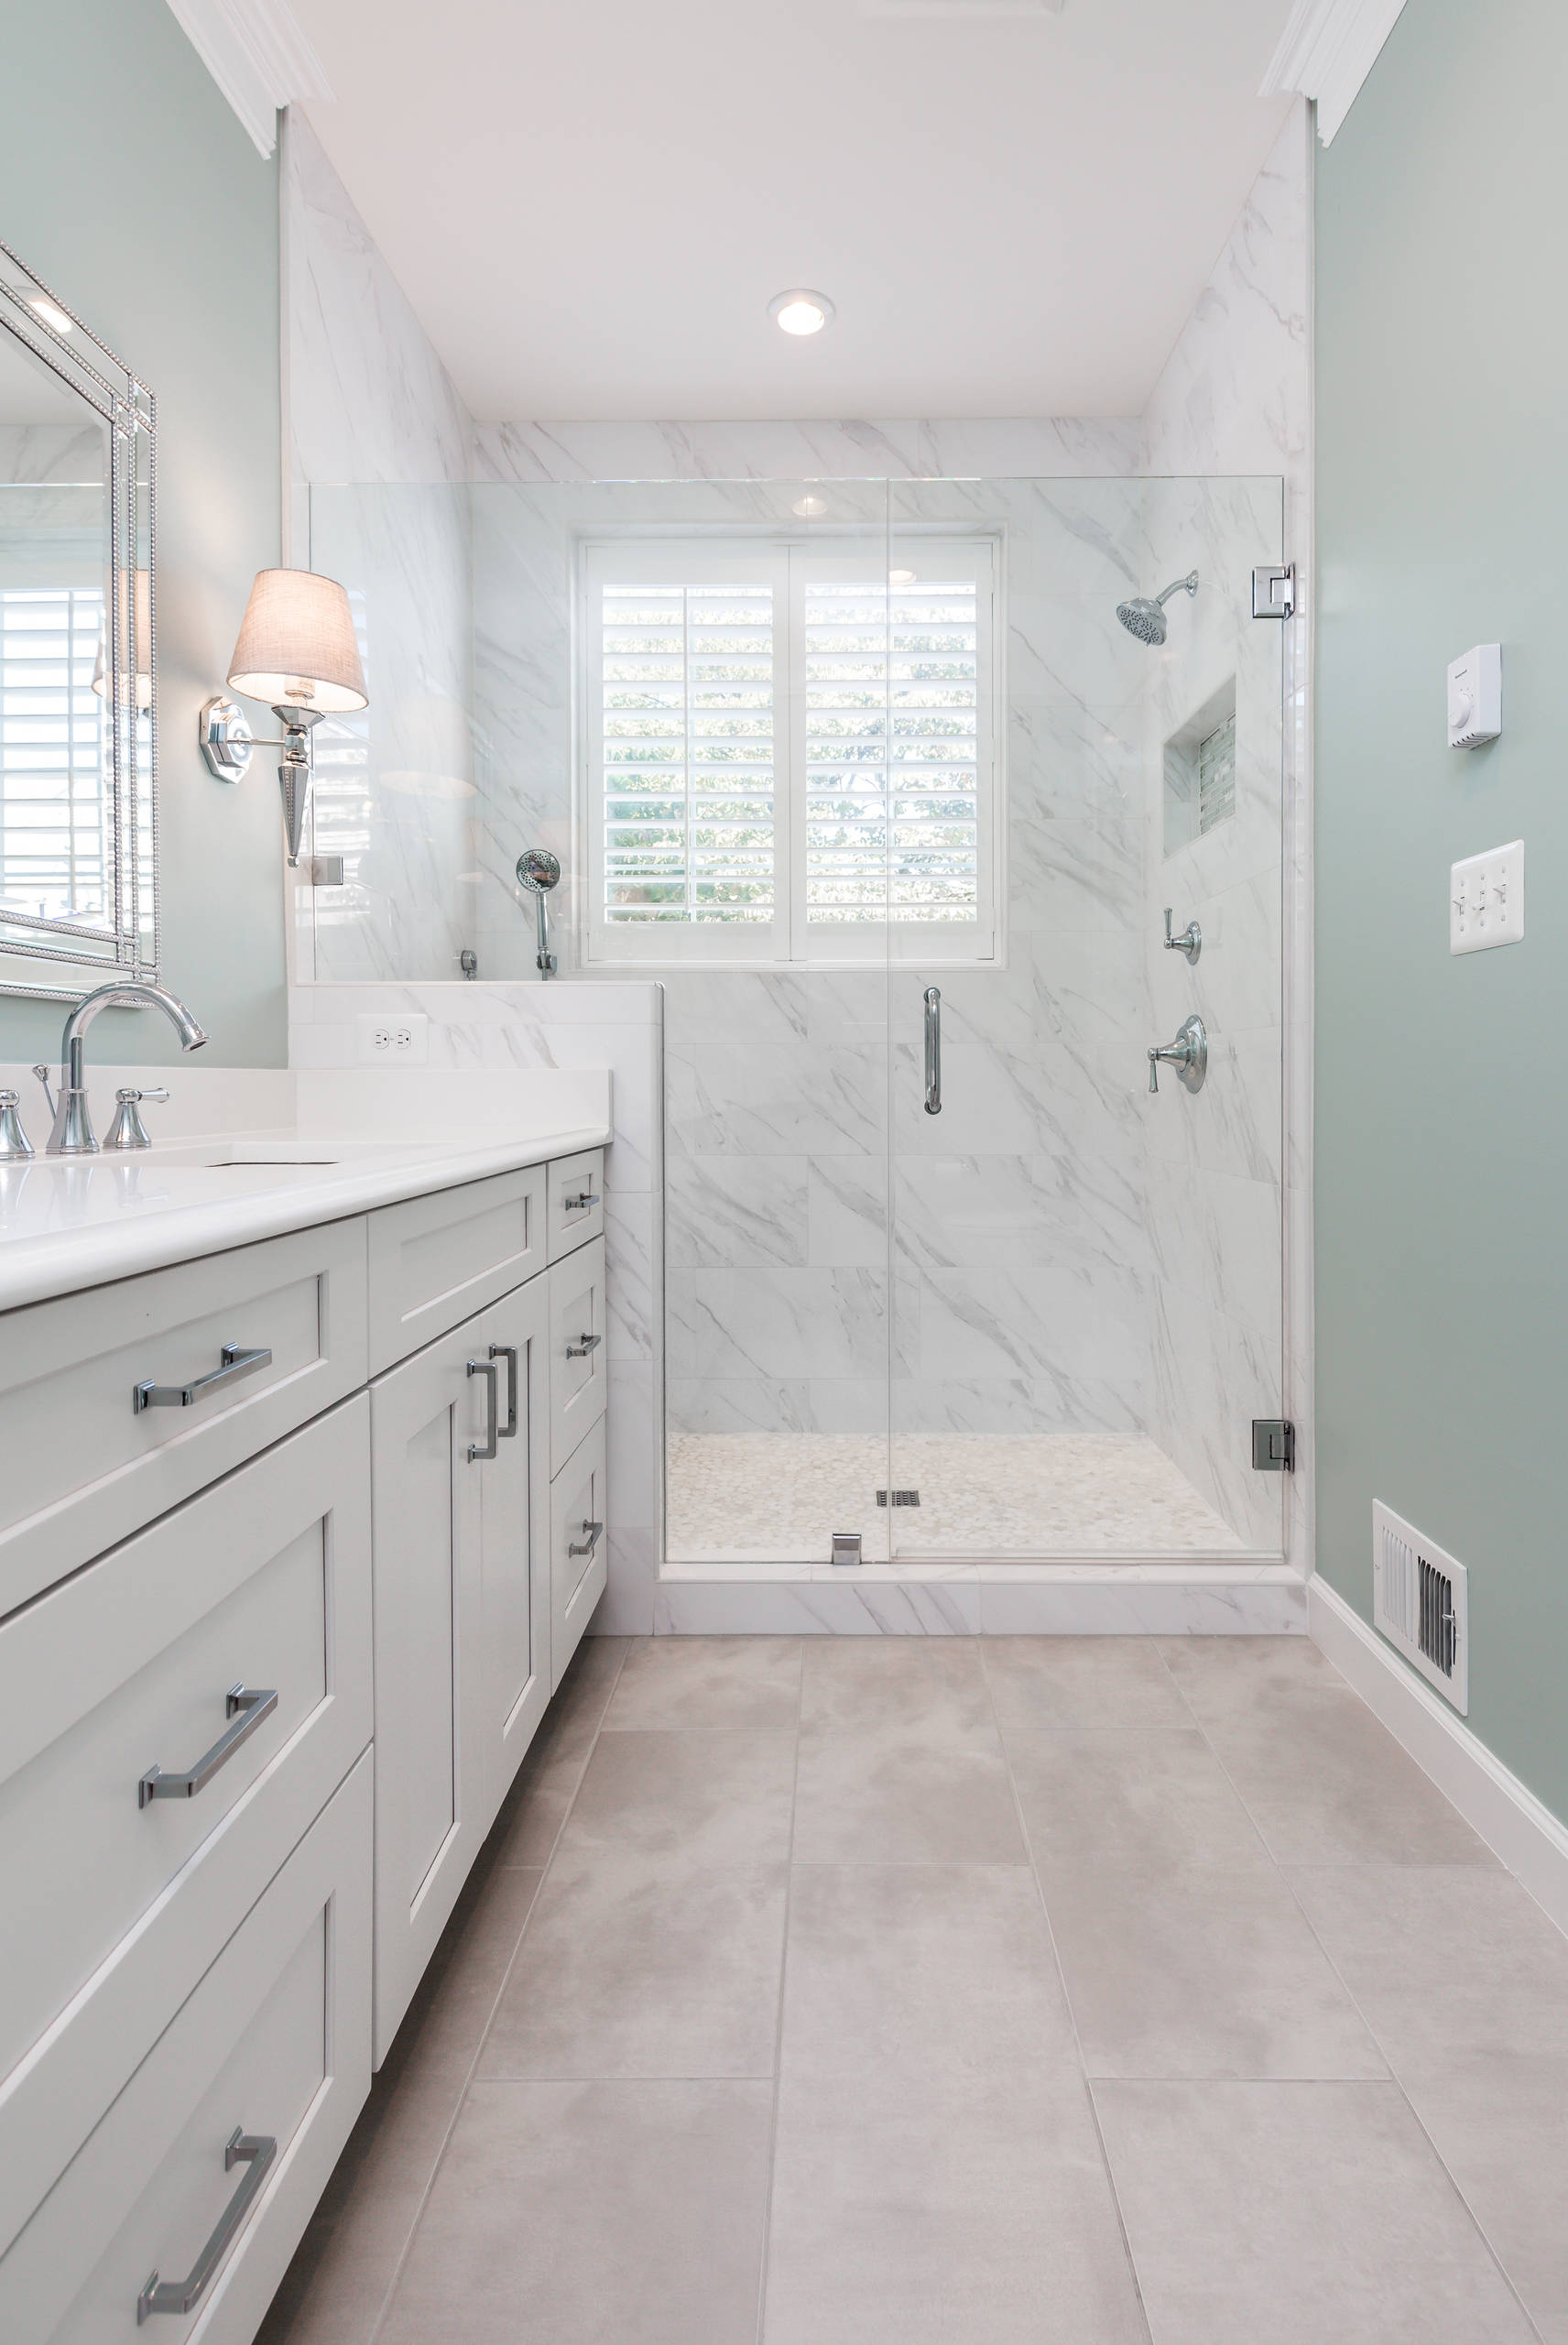 75 Beautiful Small Master Bathroom Pictures Ideas October 2020 Houzz